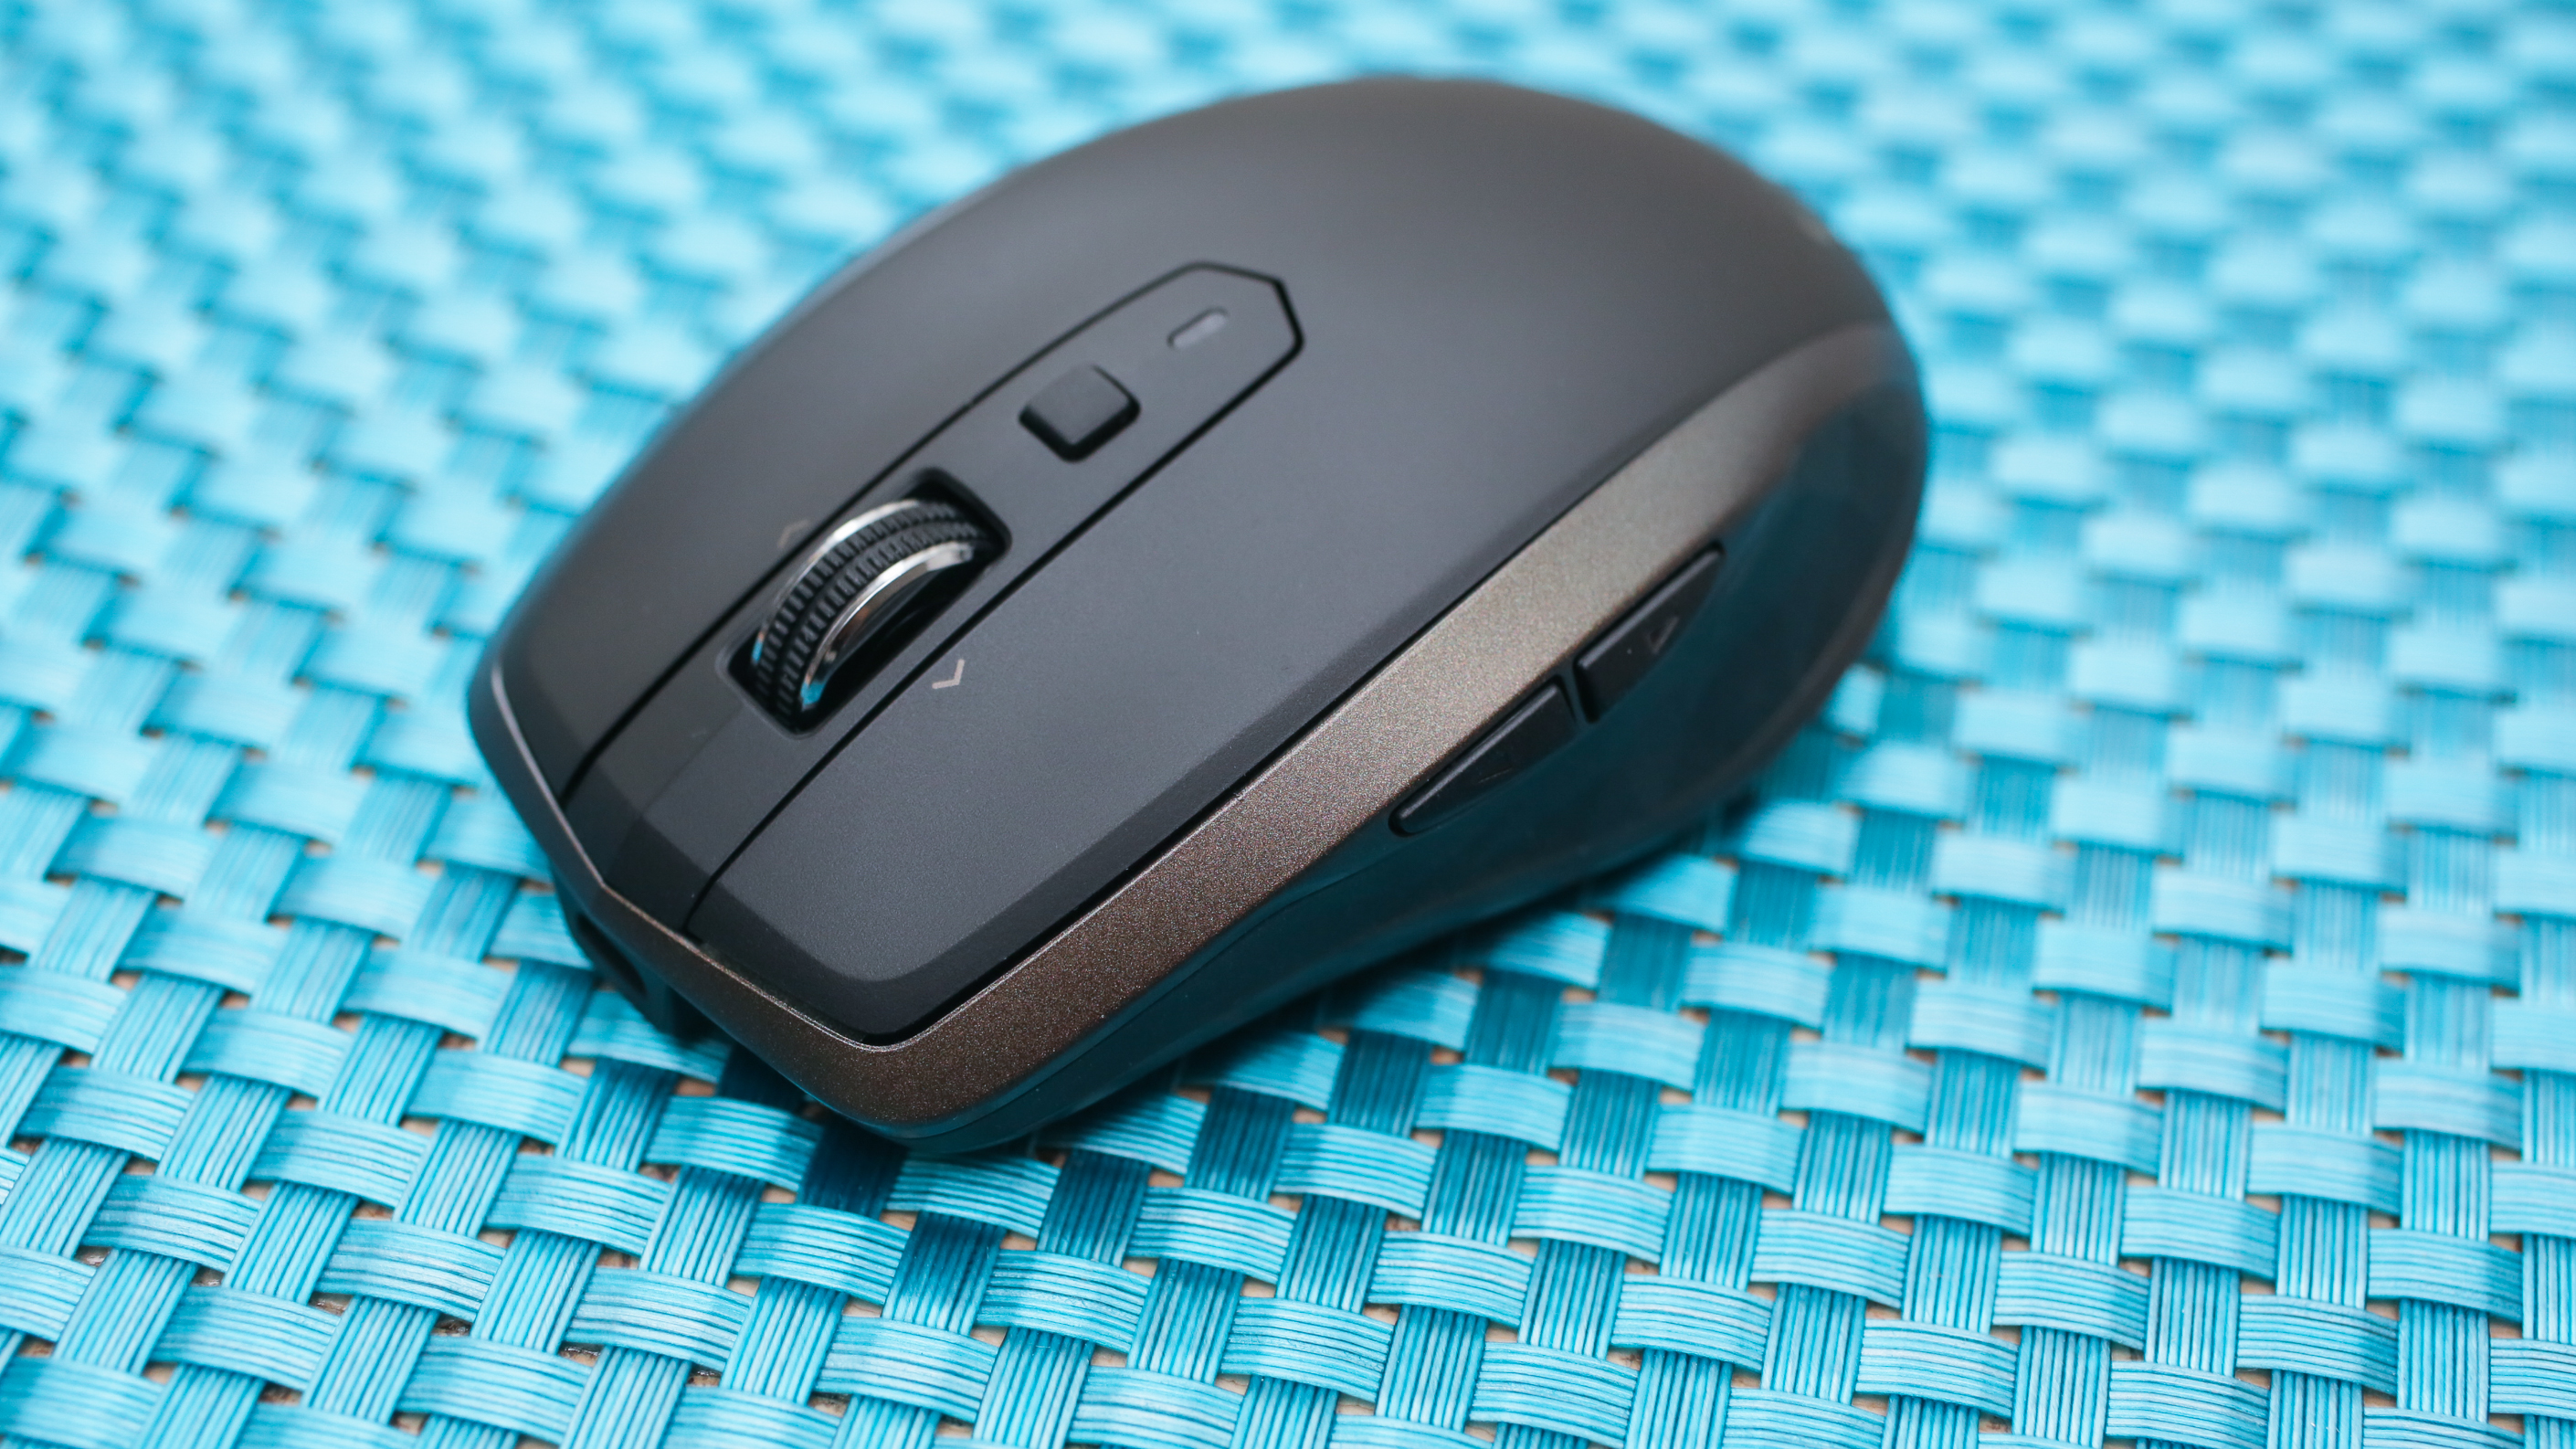 logitech-mx-anywhere-2-wireless-mobile-mouse11.jpg